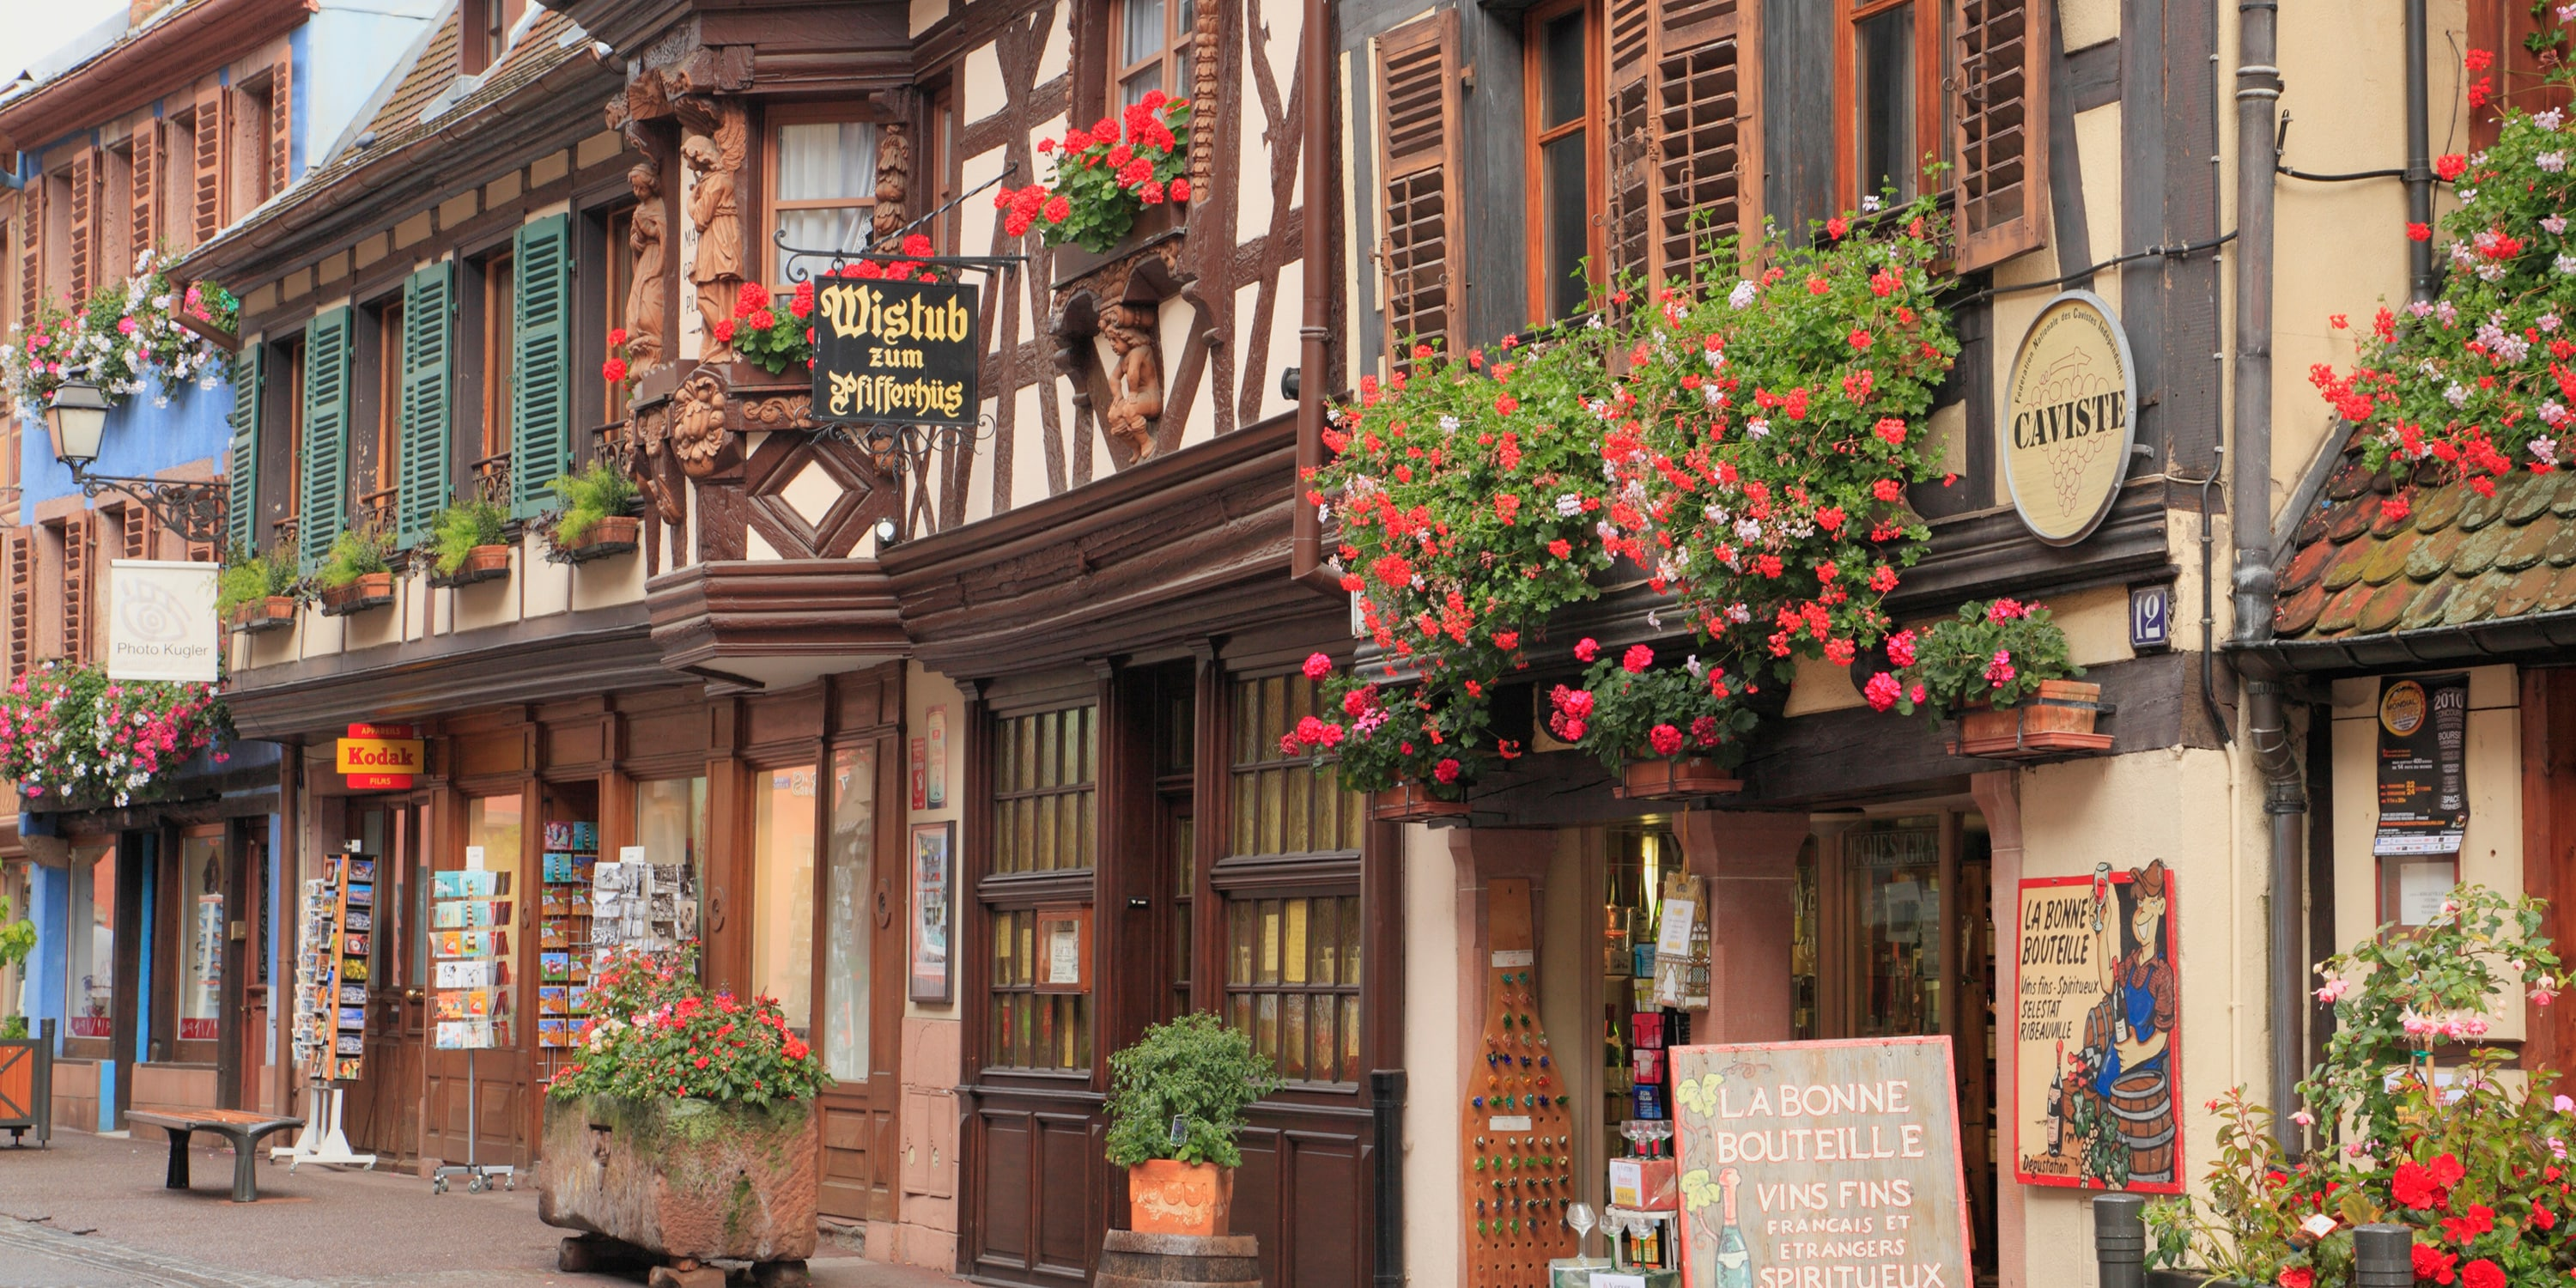 Several storefronts in traditional French style, with flowers in window boxes, line a quaint street in Riquewihr, France